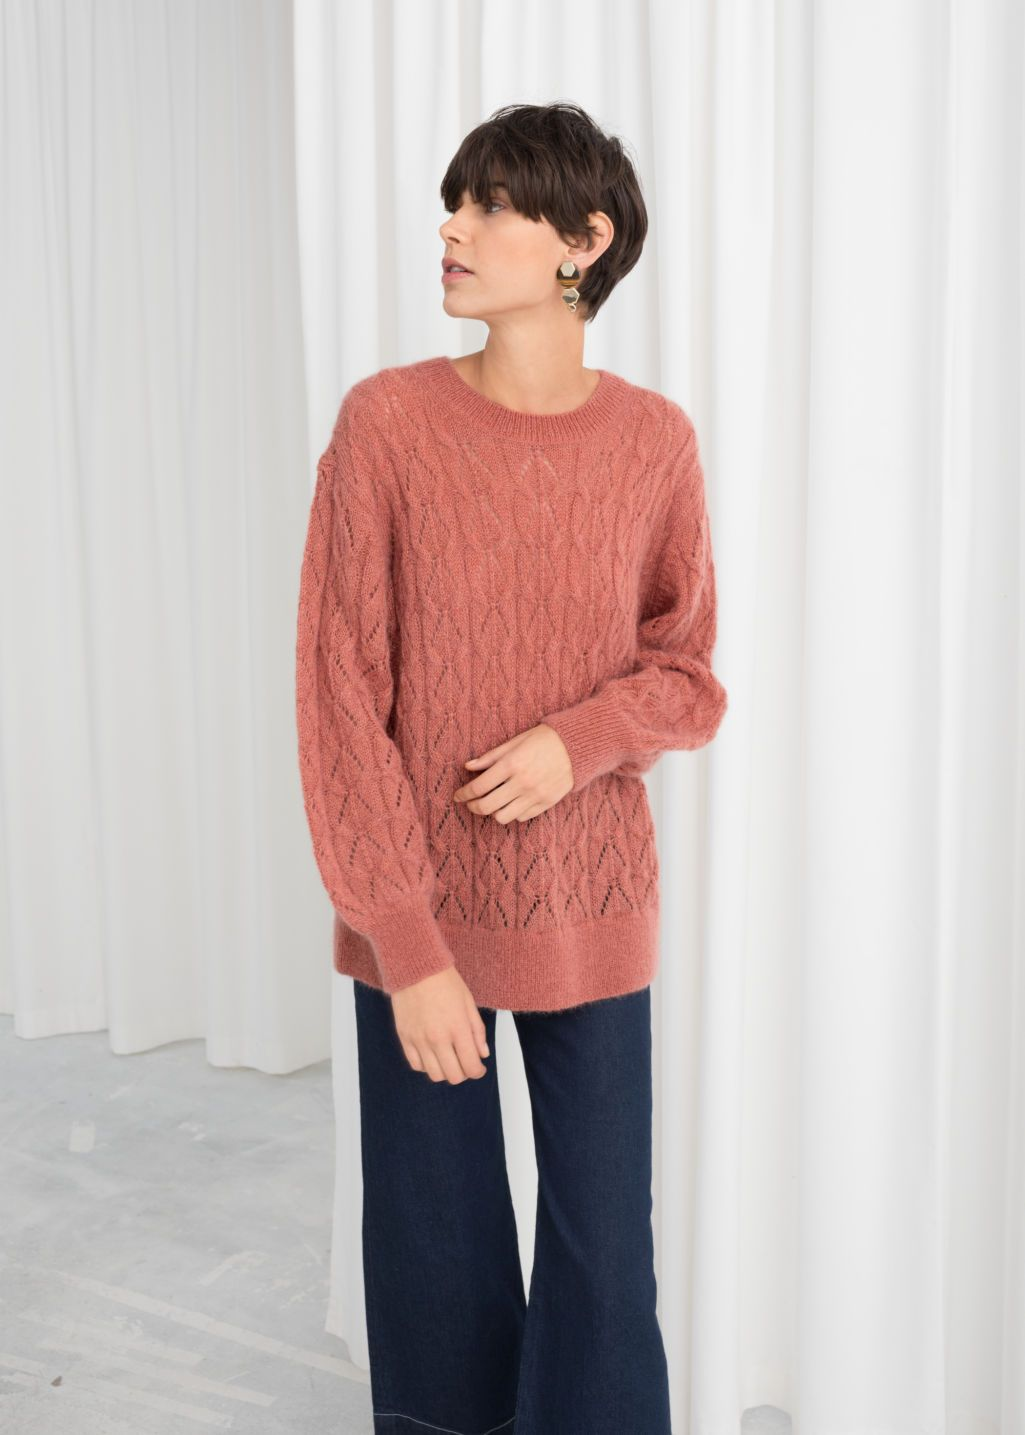 7393944ac7a Oversized Eyelet Knit Sweater - Salmon - Sweaters - & Other Stories ...